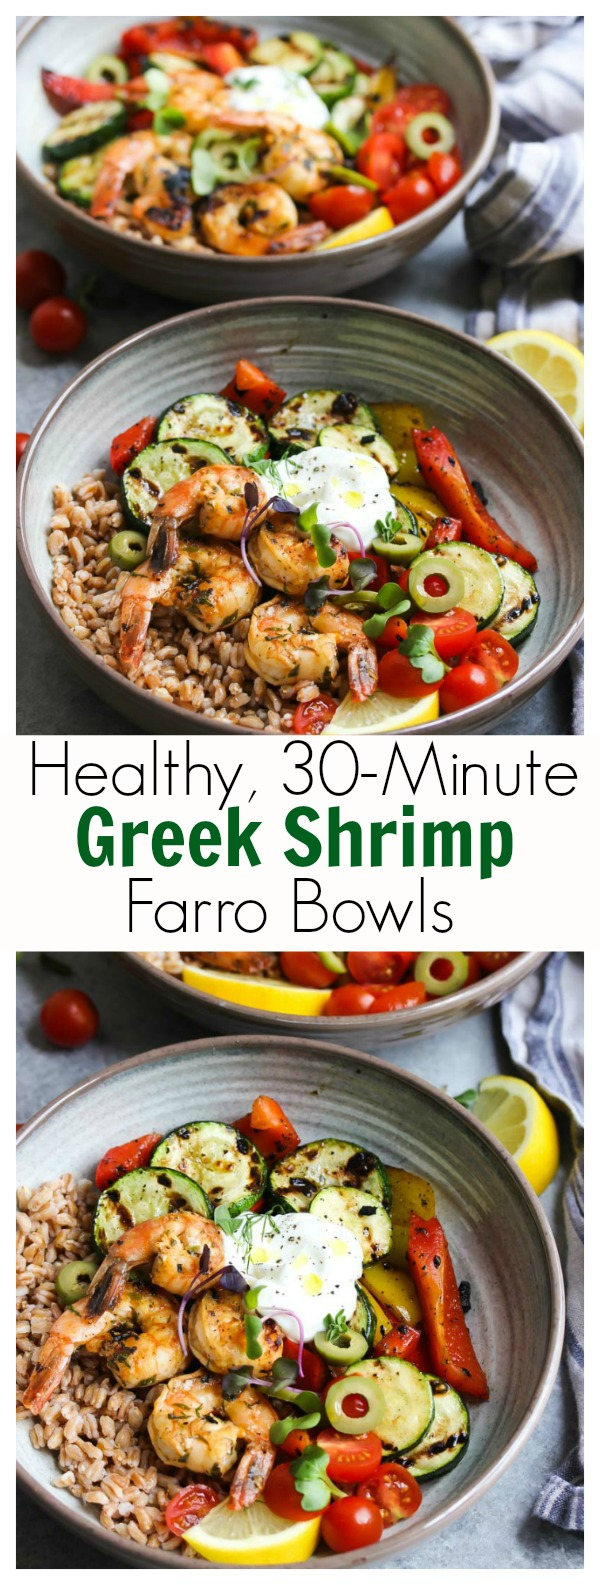 30-Minute Greek Shrimp and Farro Bowls | dishingouthealth.com